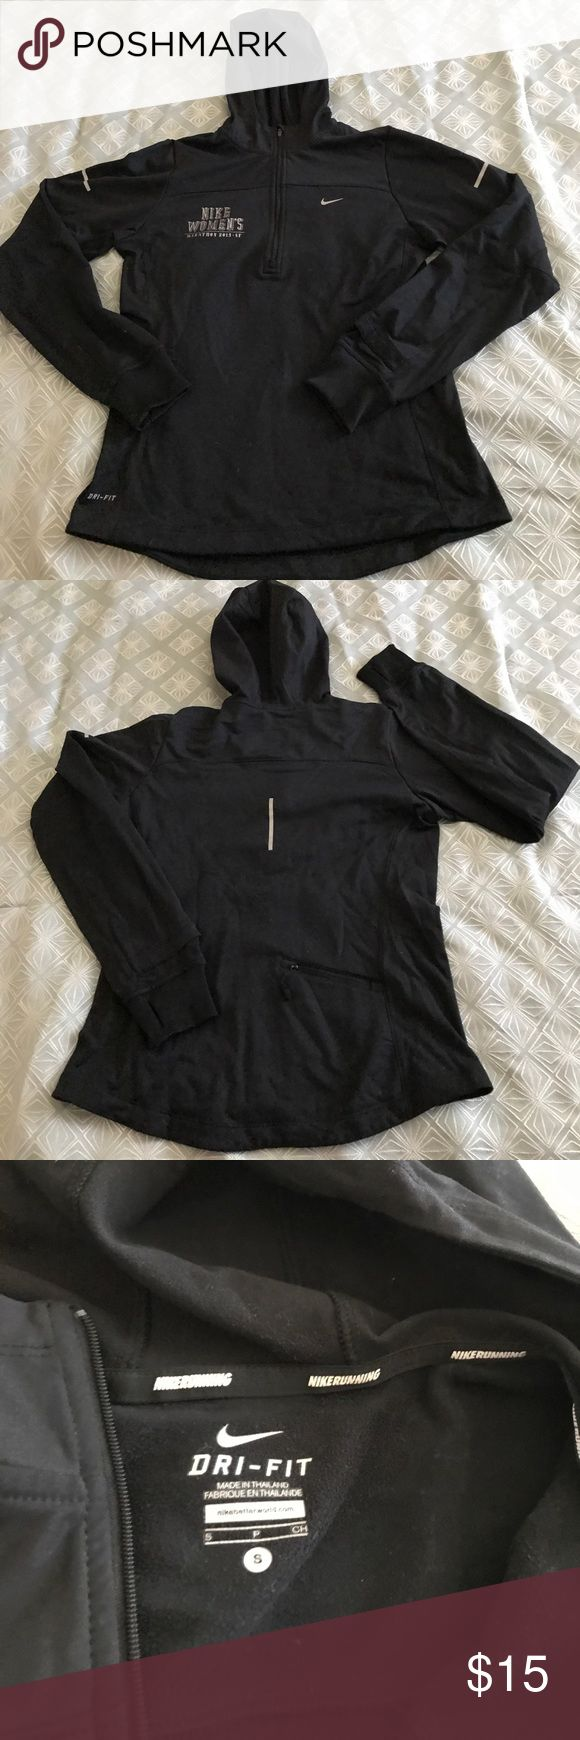 Nike women's marathon '13 SF half zip hoodie Excellent used condition. Black with reflective detail. Zipper, thumb holes, and back pocket intact. Lightweight but very warm. Dri-fit with light fleece lining. Nike Tops Sweatshirts & Hoodies